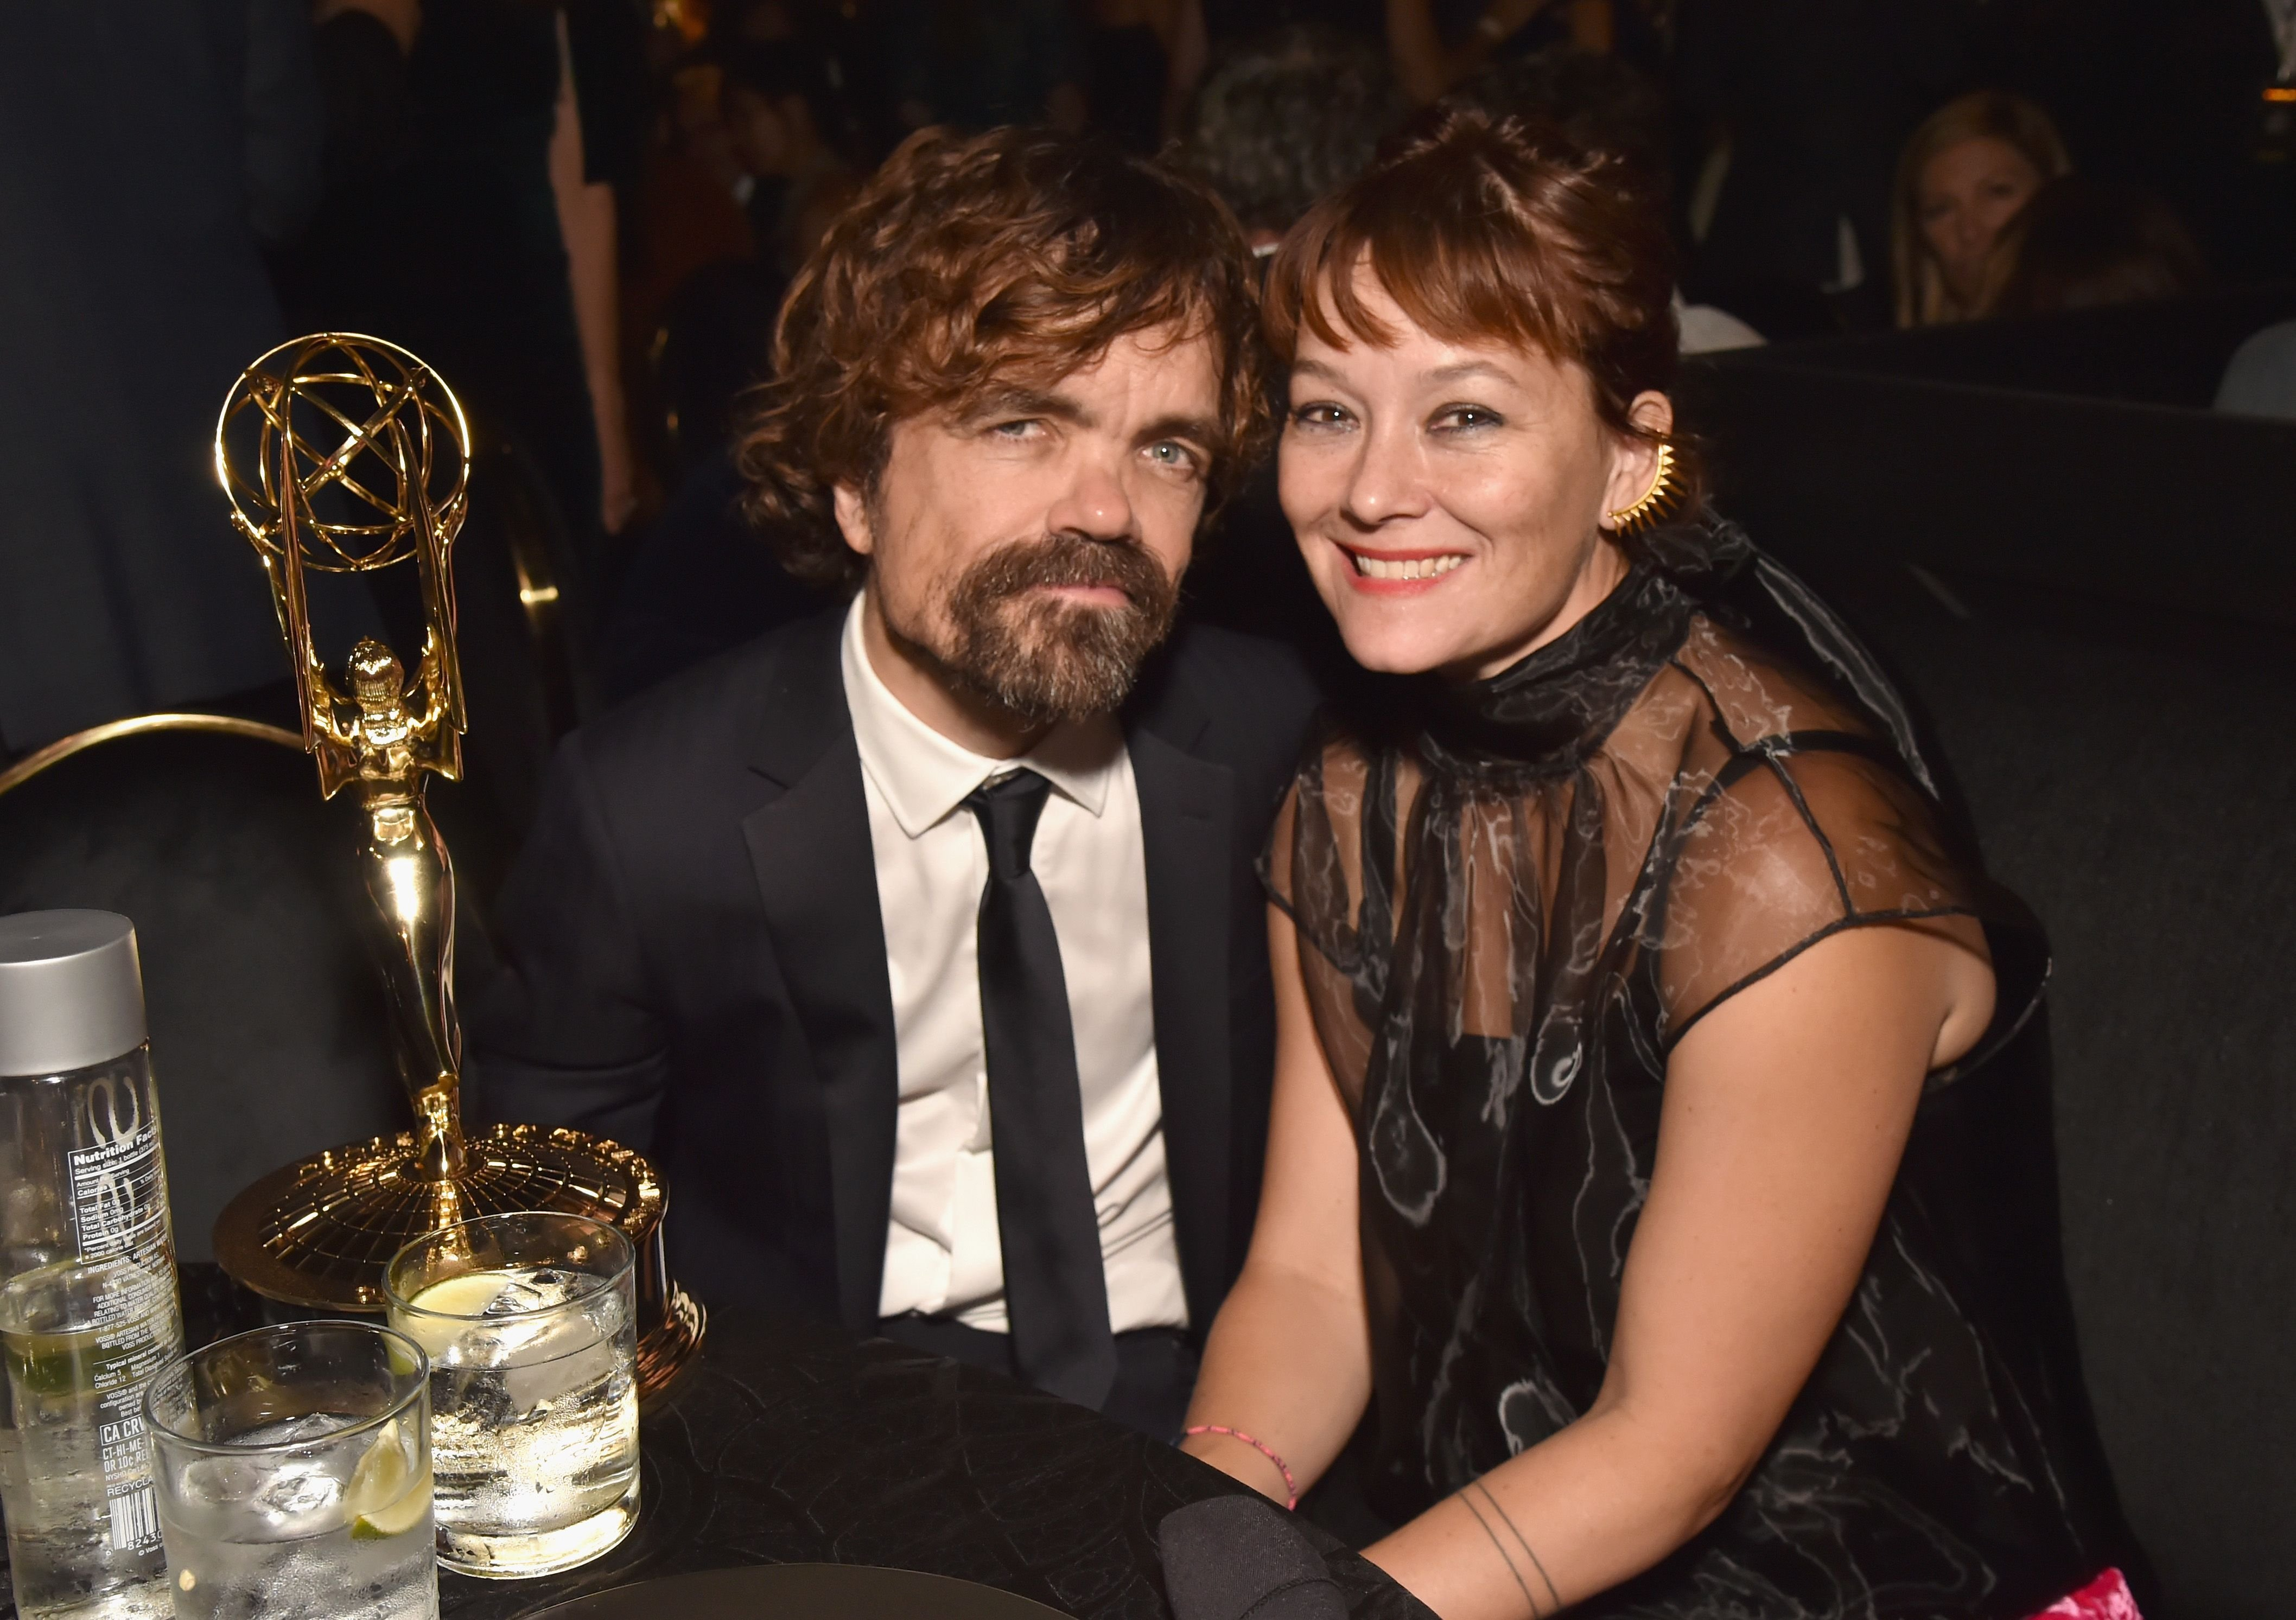 Peter Dinklage and Erica Schmidt at THE HBO Official 2018 Emmy After Party in Los Angeles, California   Source: Getty Images